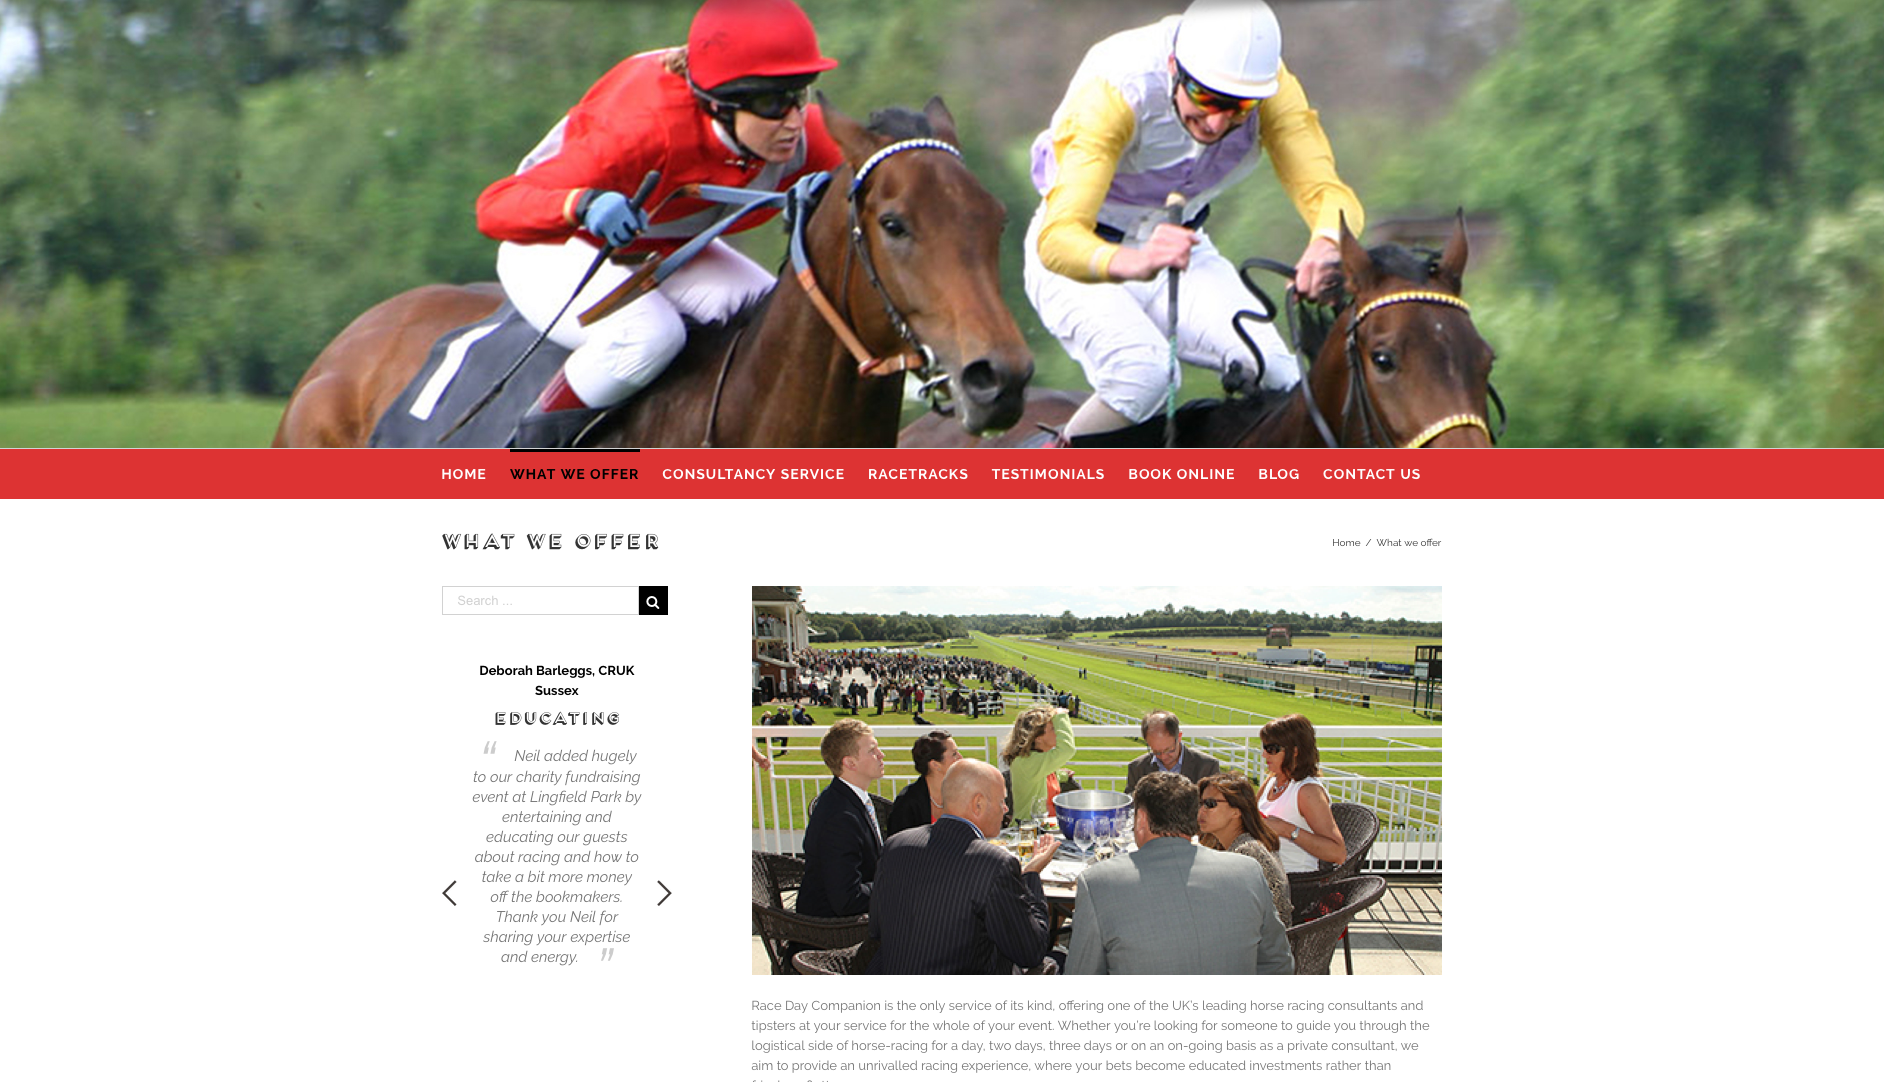 raceday companion website design and build by collective digital